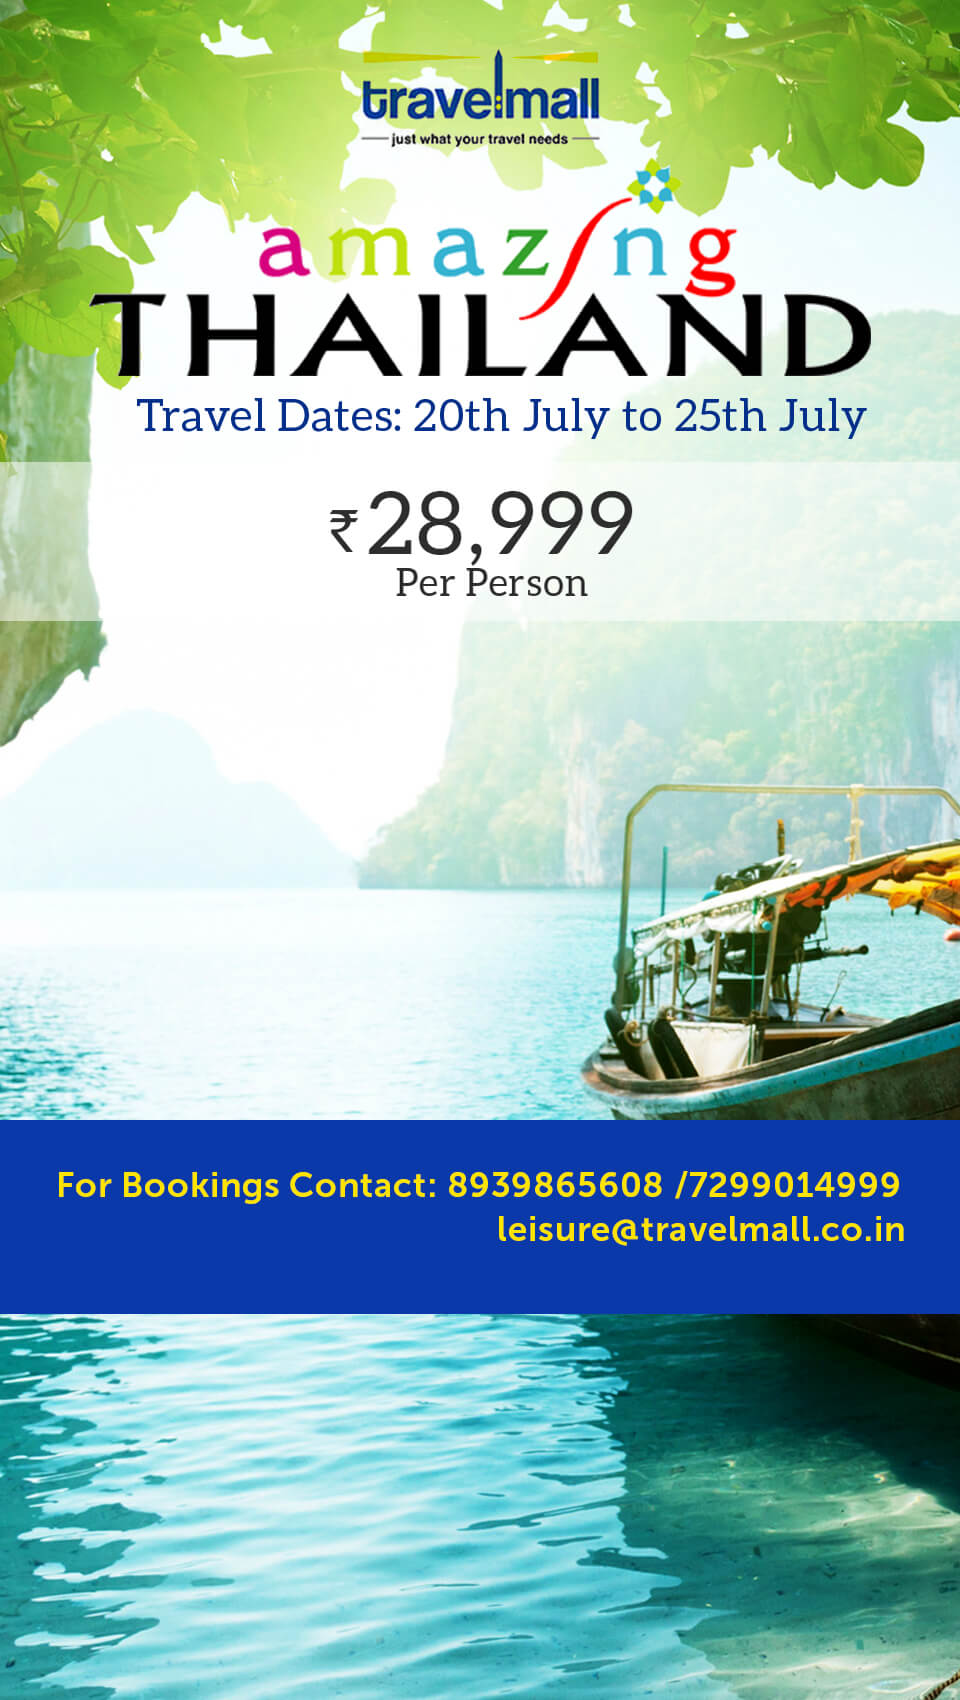 Amazing Thailand - cms - buzztm - TravelMall - just what your travel needs